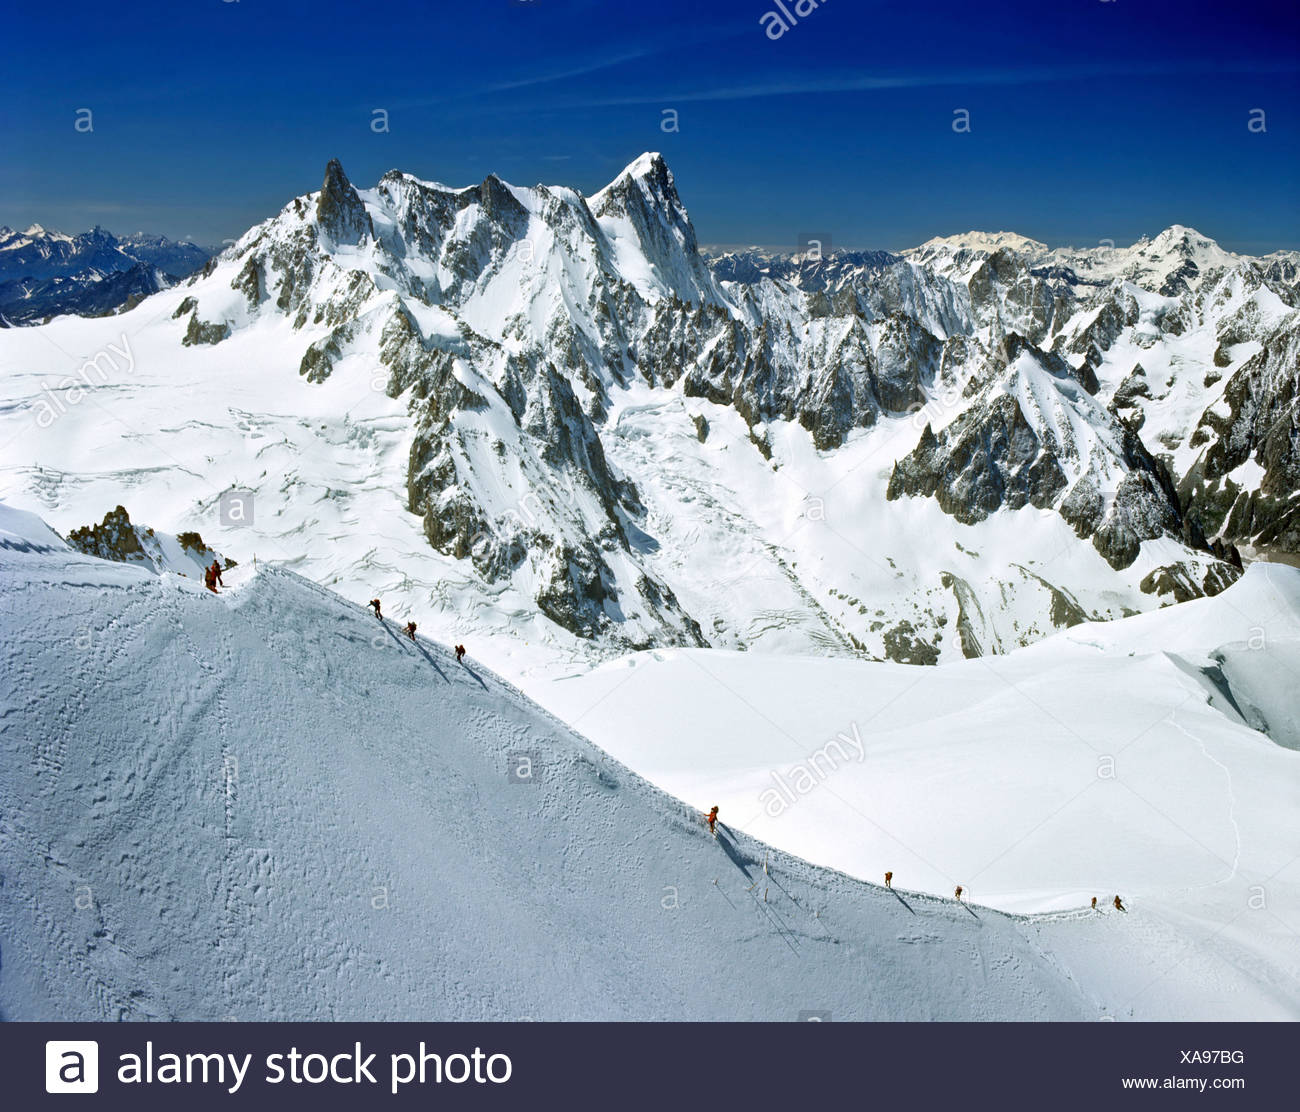 Descent from Mt. Aiguille du Midi to Vallee Blanche, Grandes Jorasses, Mont Blanc massif, Savoy Alps, France, Europe - Stock Image